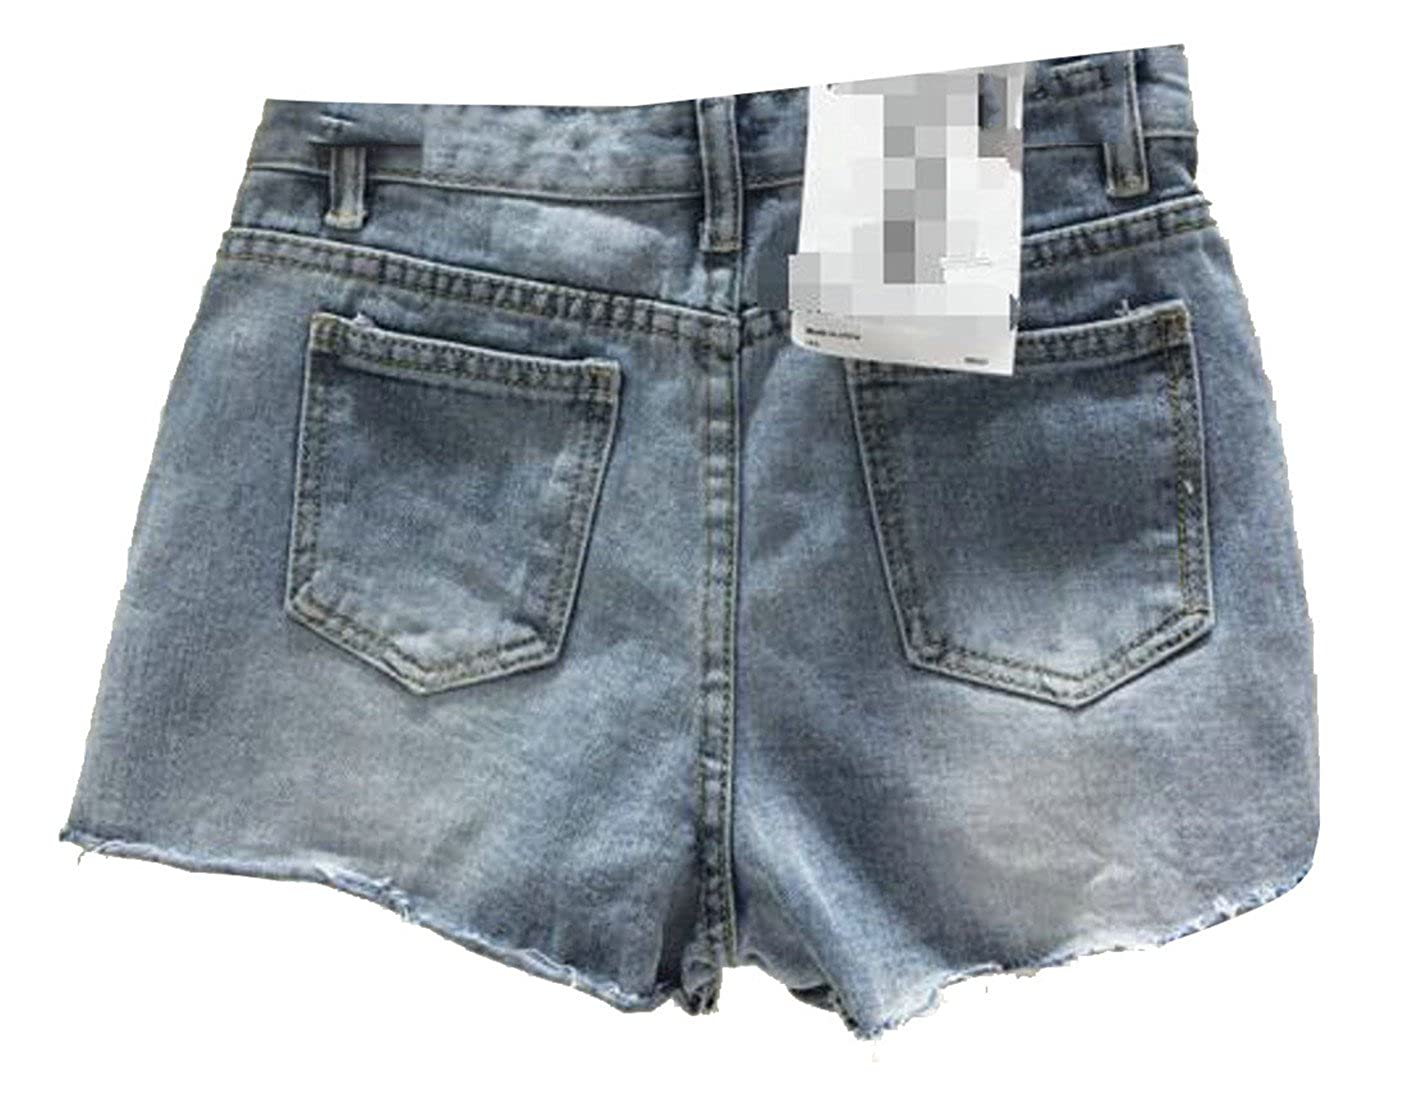 CMC Womens High Waist Cut Off Embroideried Faded Washed Hot Denim Shorts